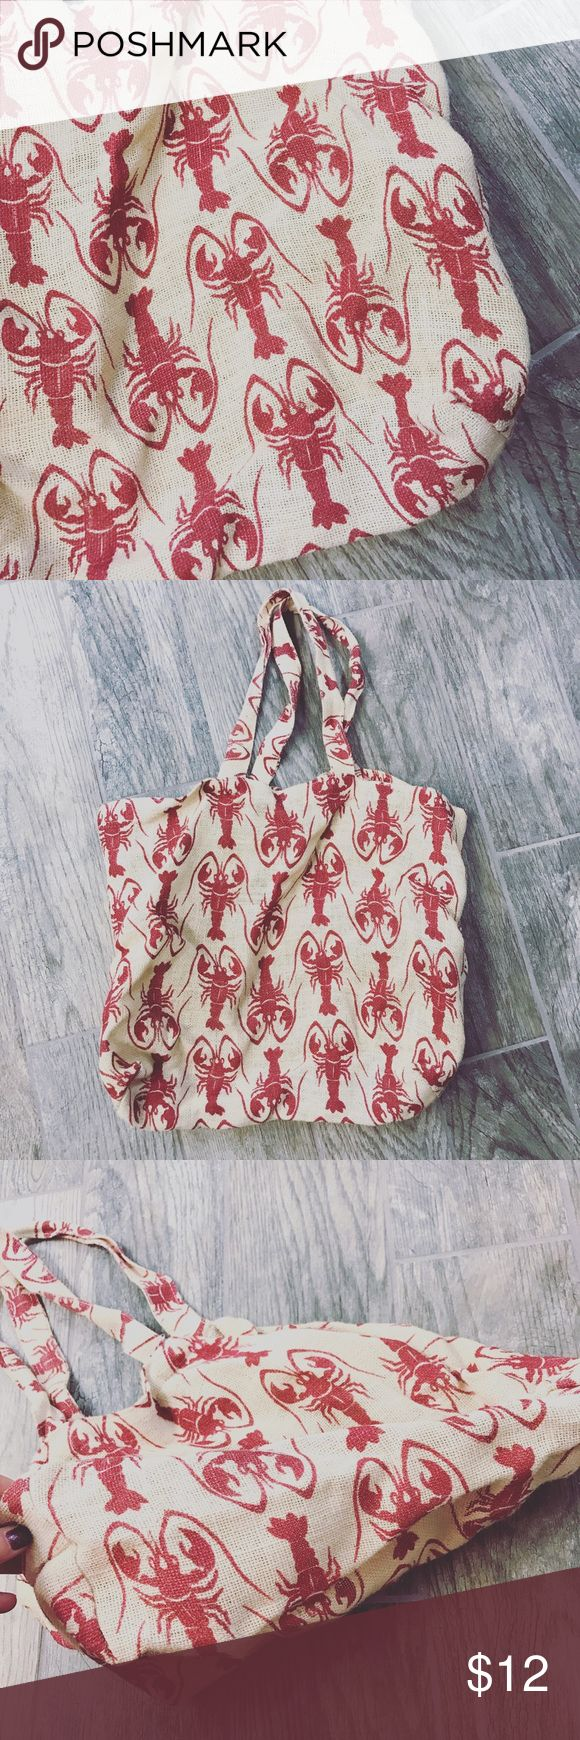 Jute lobster beach bag Used in perfect condition!  -Very spacious fits a ton of stuff in it for a day at the beach! -Made of 100% Jute  ⚜️NO TRADES ⚜️PRICE IS FIRM UNLESS BUNDLED ⚜️BUNDLE TO SAVE ⚜️FEEL FREE TO ASK ANY QUESTIONS! Bags Hobos